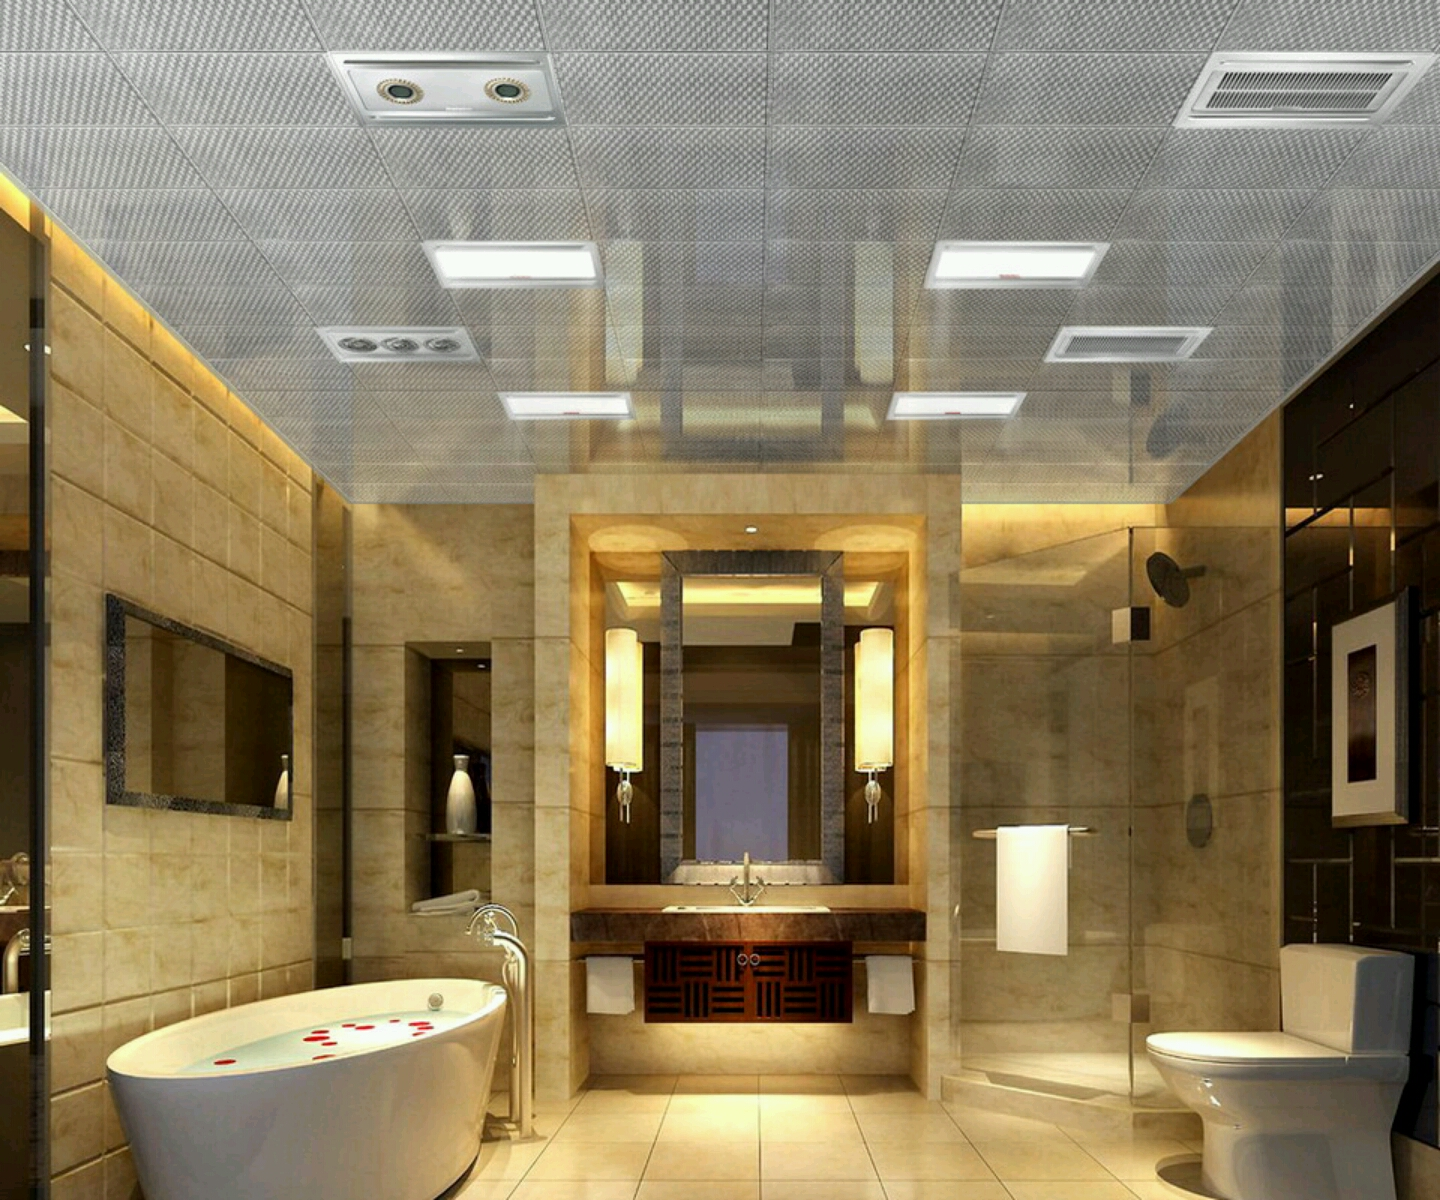 New home designs latest luxury bathrooms designs ideas New design in bathroom